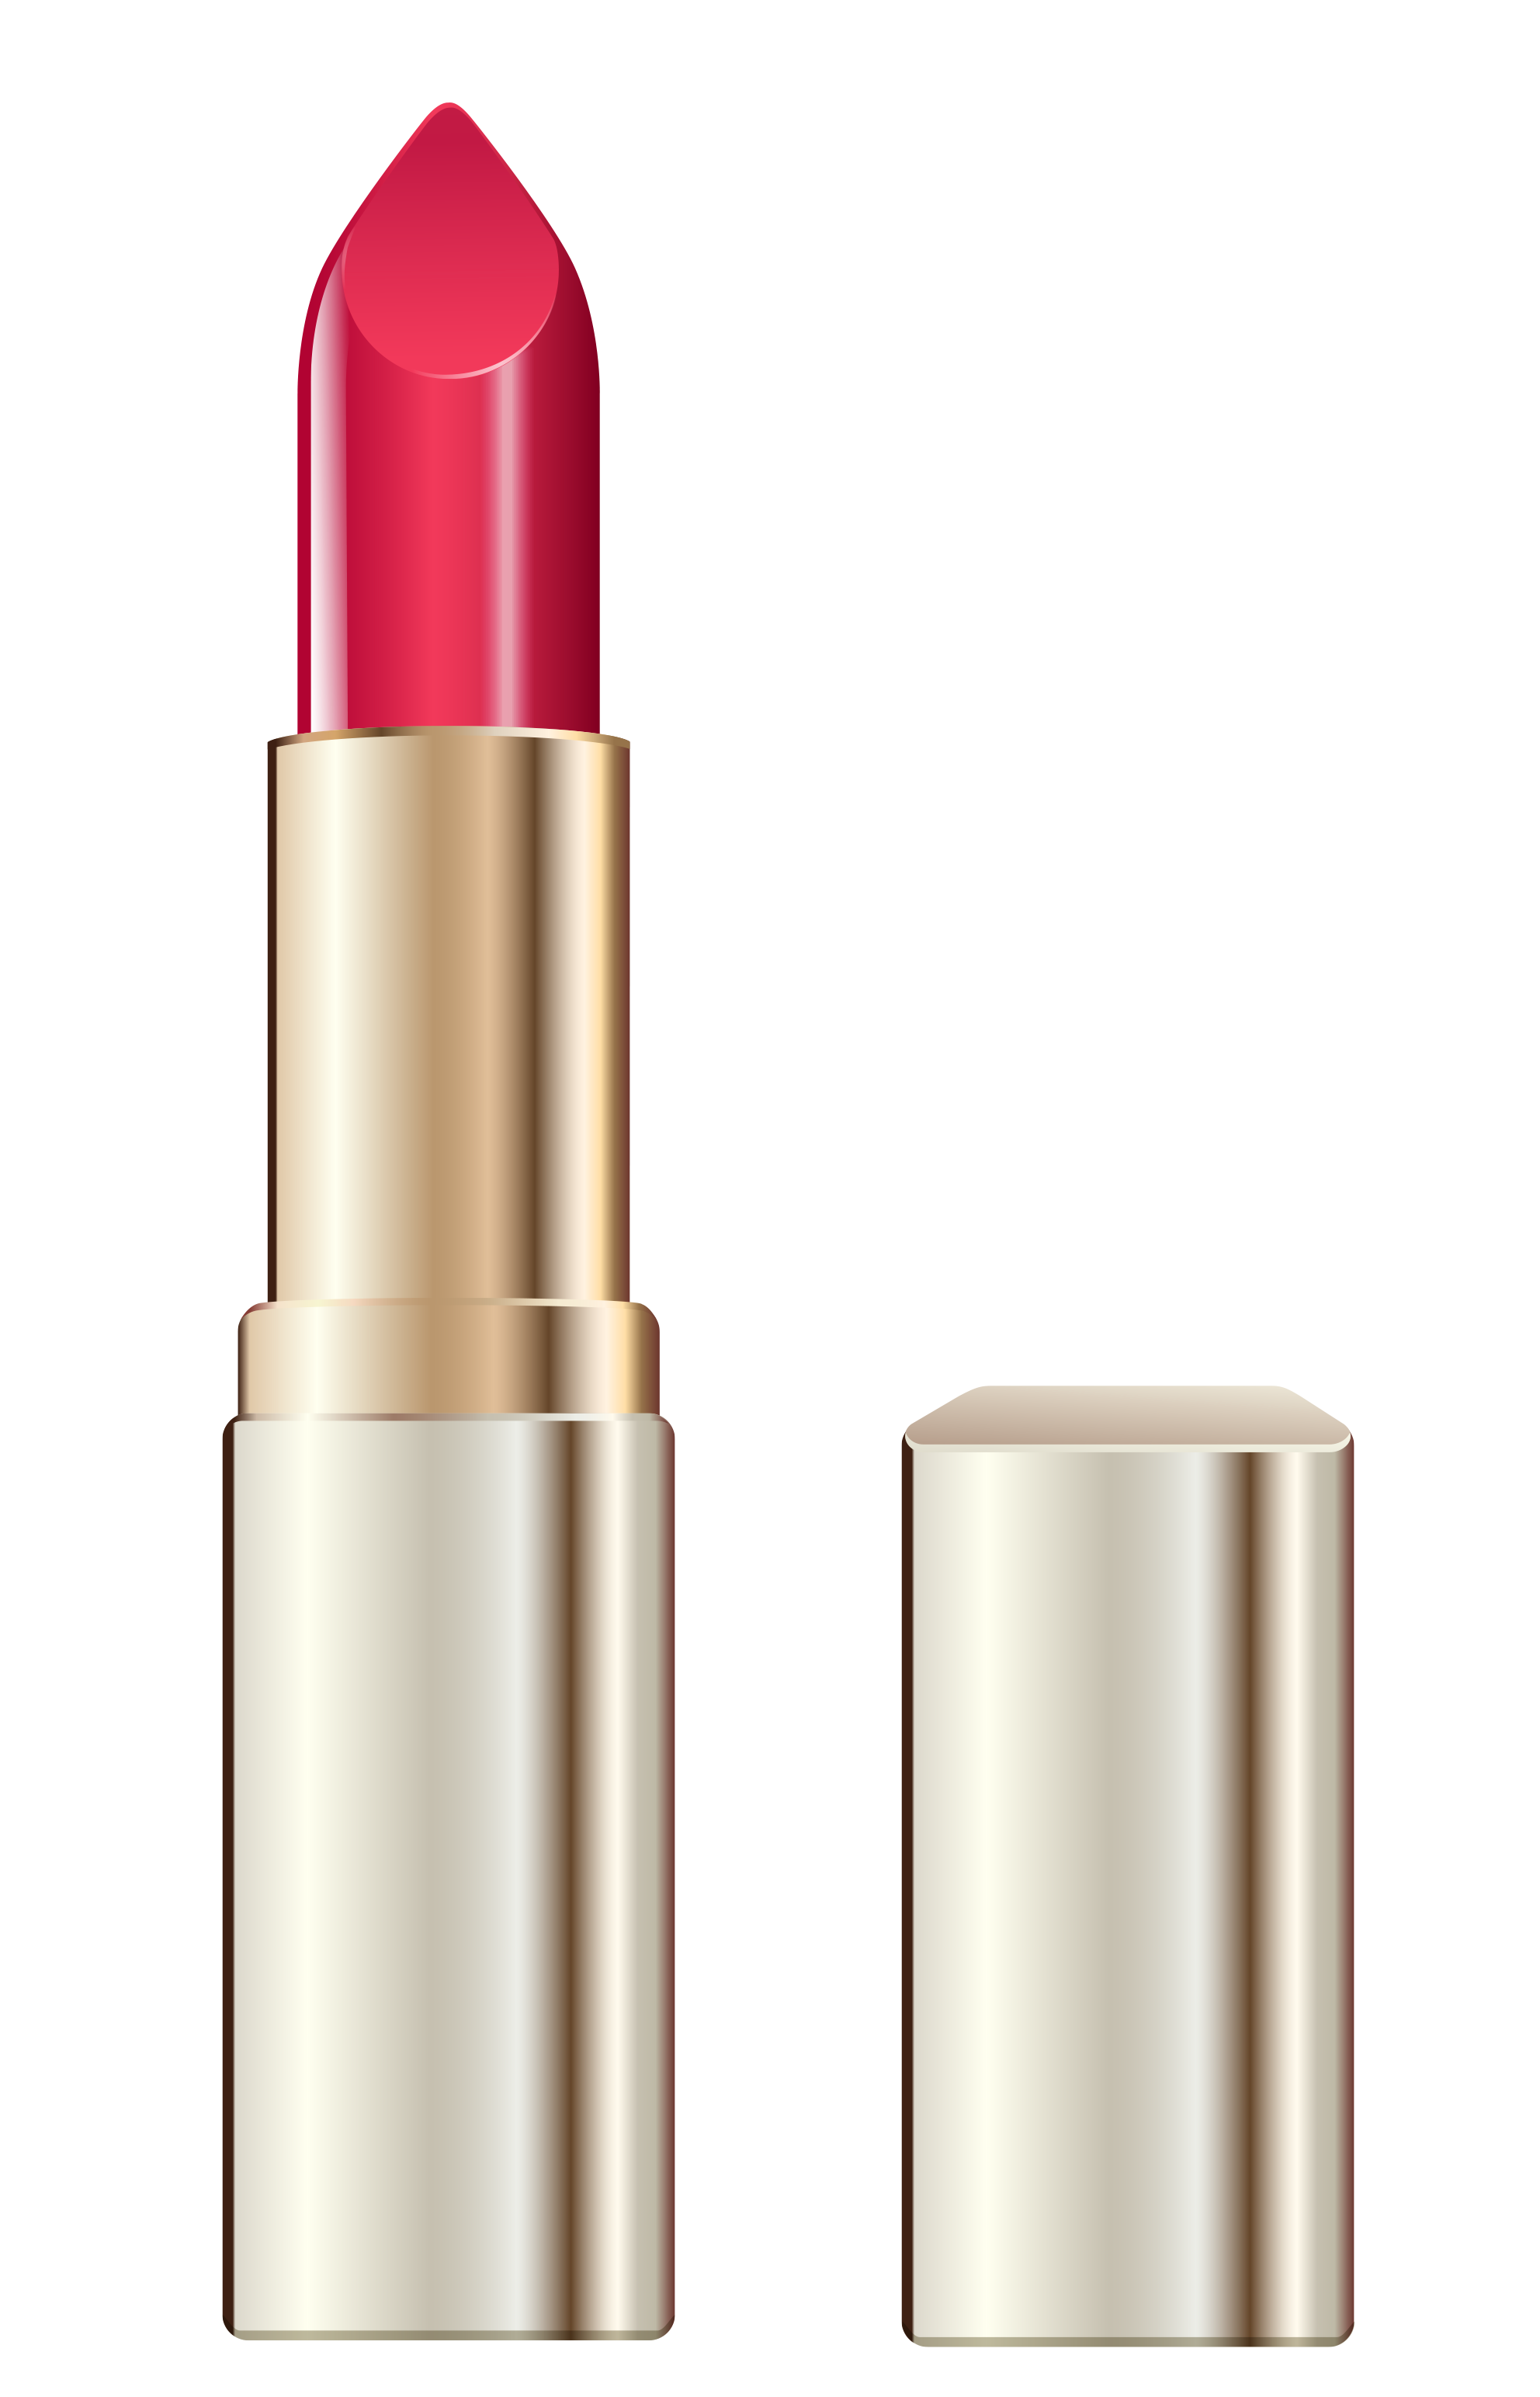 Pink lipstick png. Clipart picture gallery yopriceville